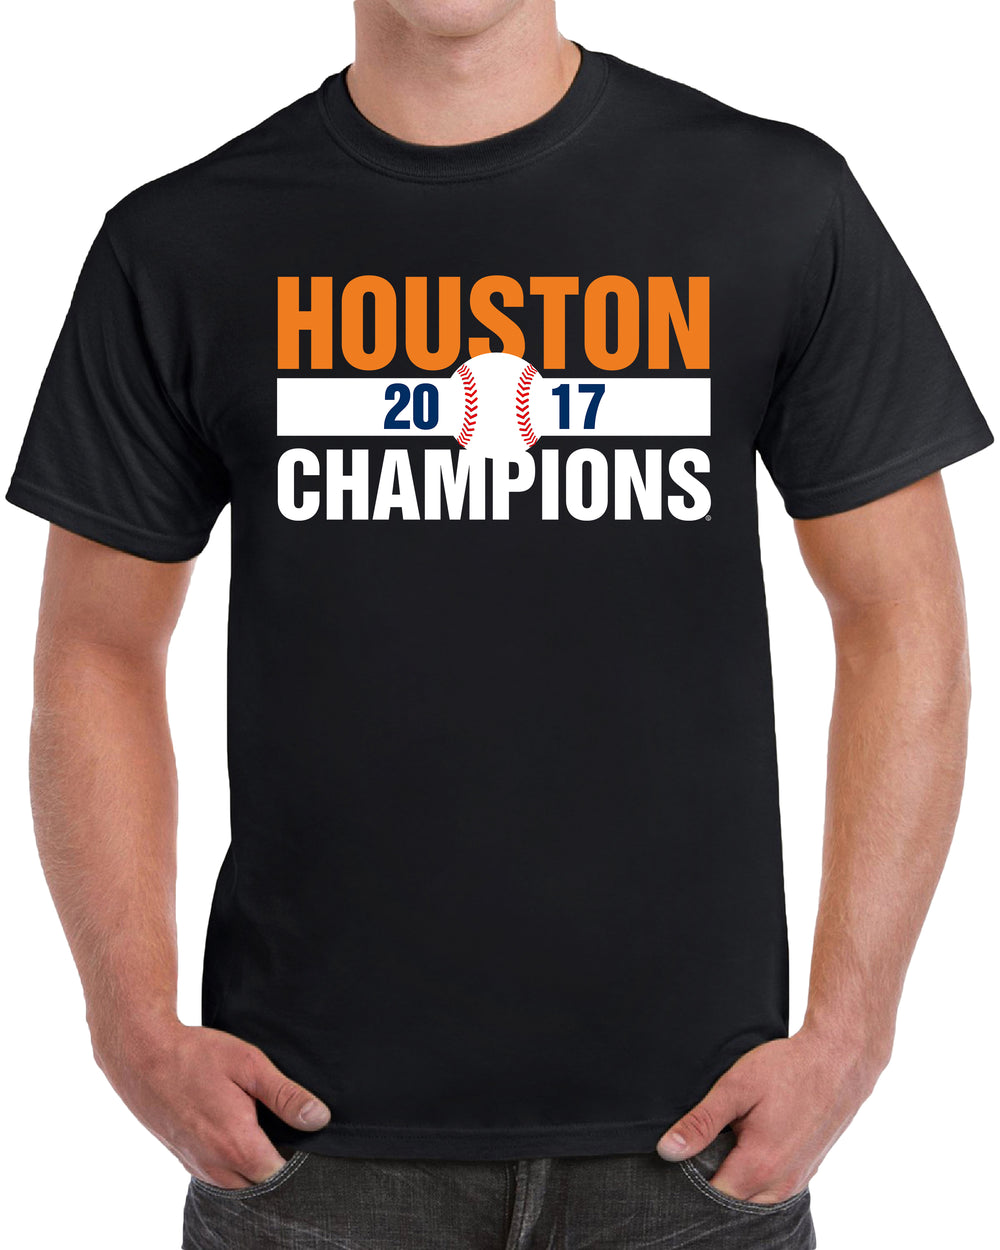 Houston 2017 World Champions Baseball